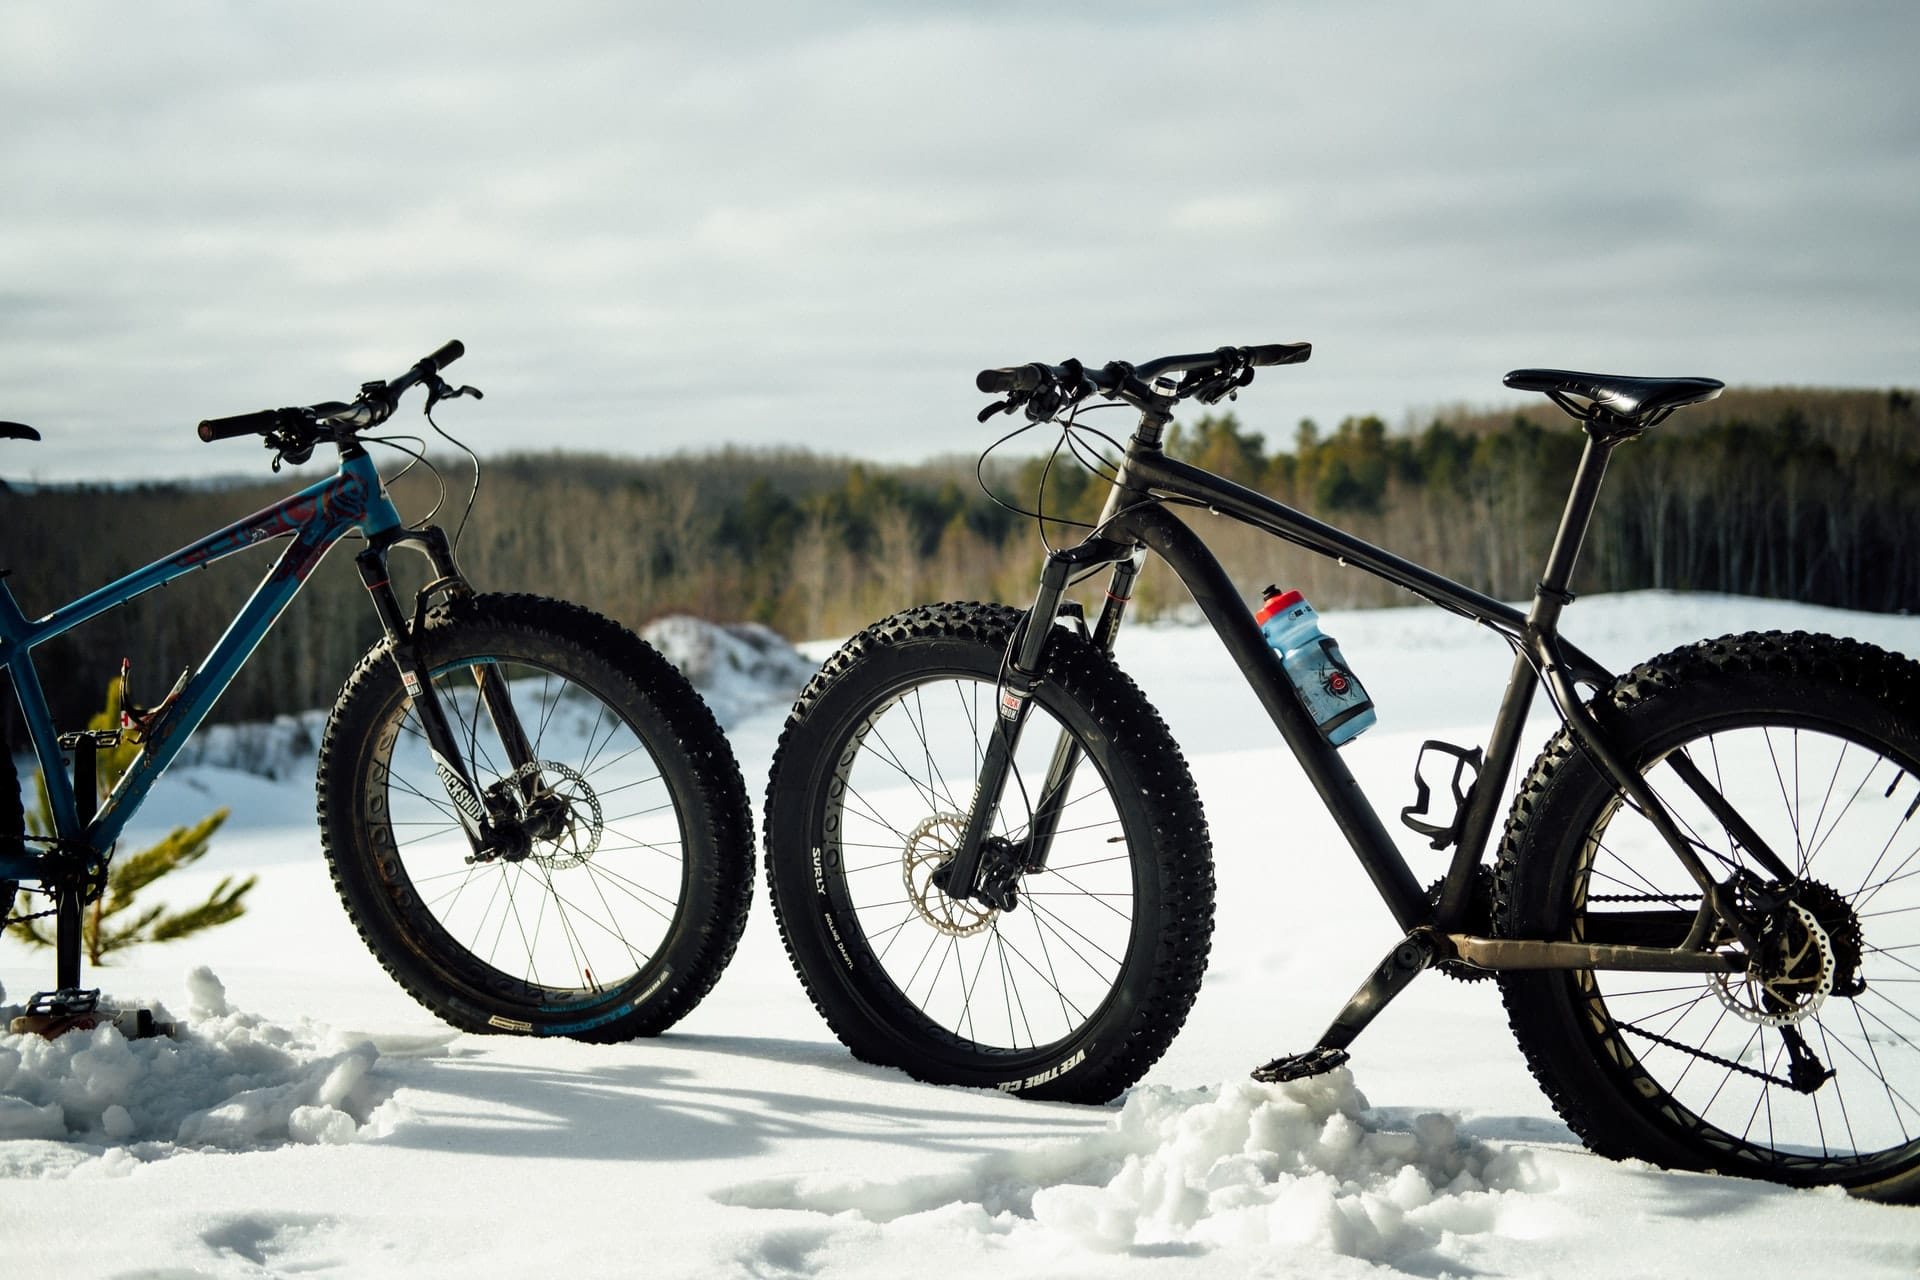 two fat bikes suited for overweight people over 400 lbs sitting in the snow